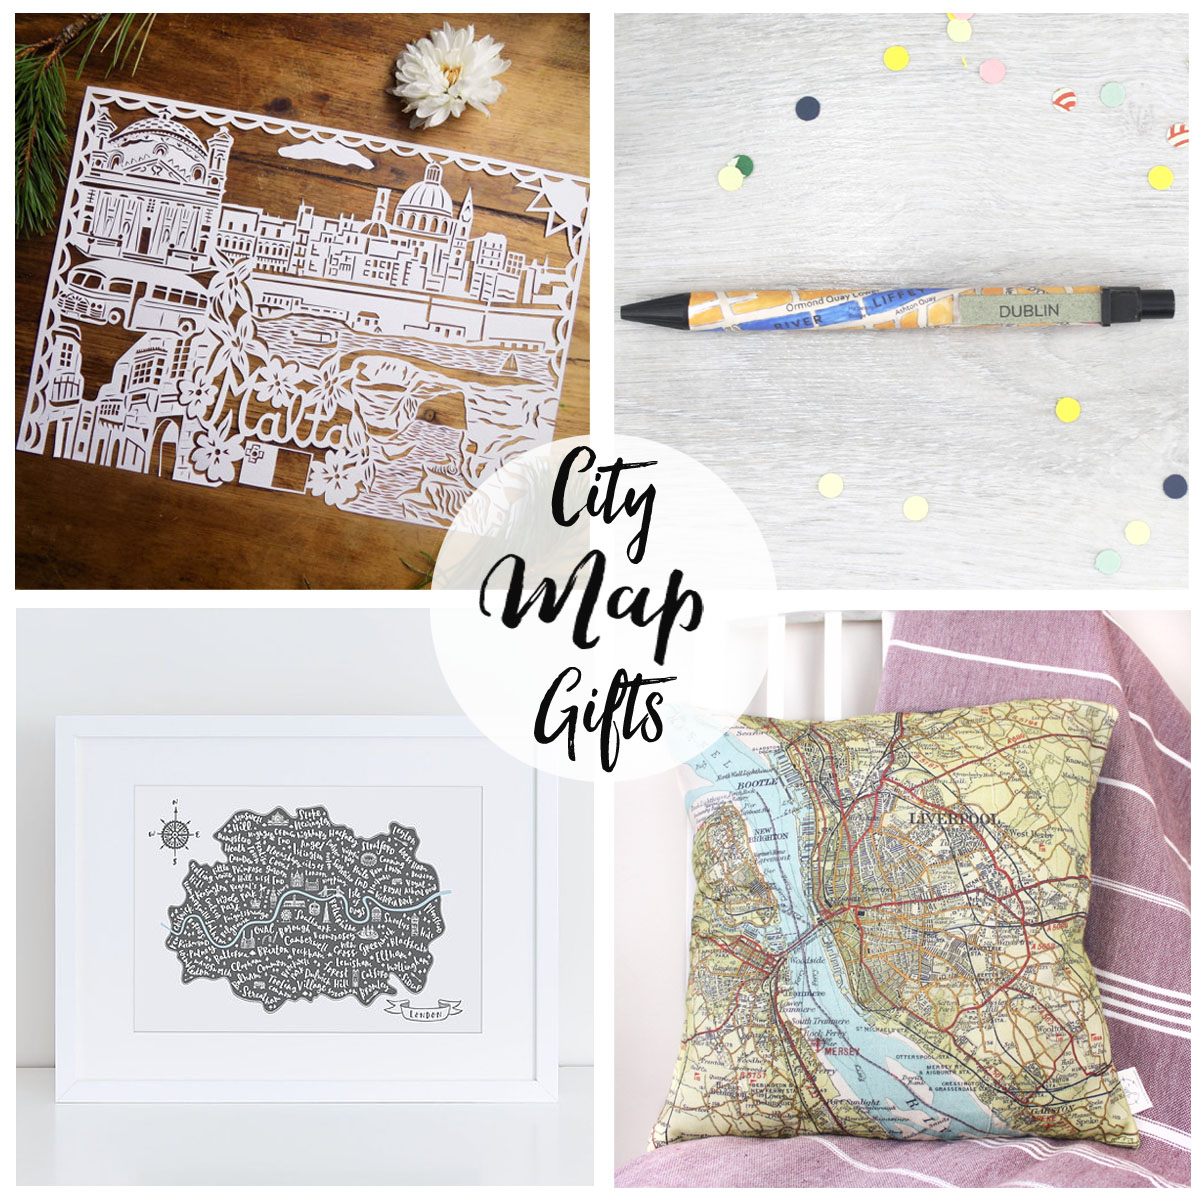 Gifts for map lovers handmade christmas gift guide from six0six design city map gifts custom map travel gifts of your home city capital city presents negle Images